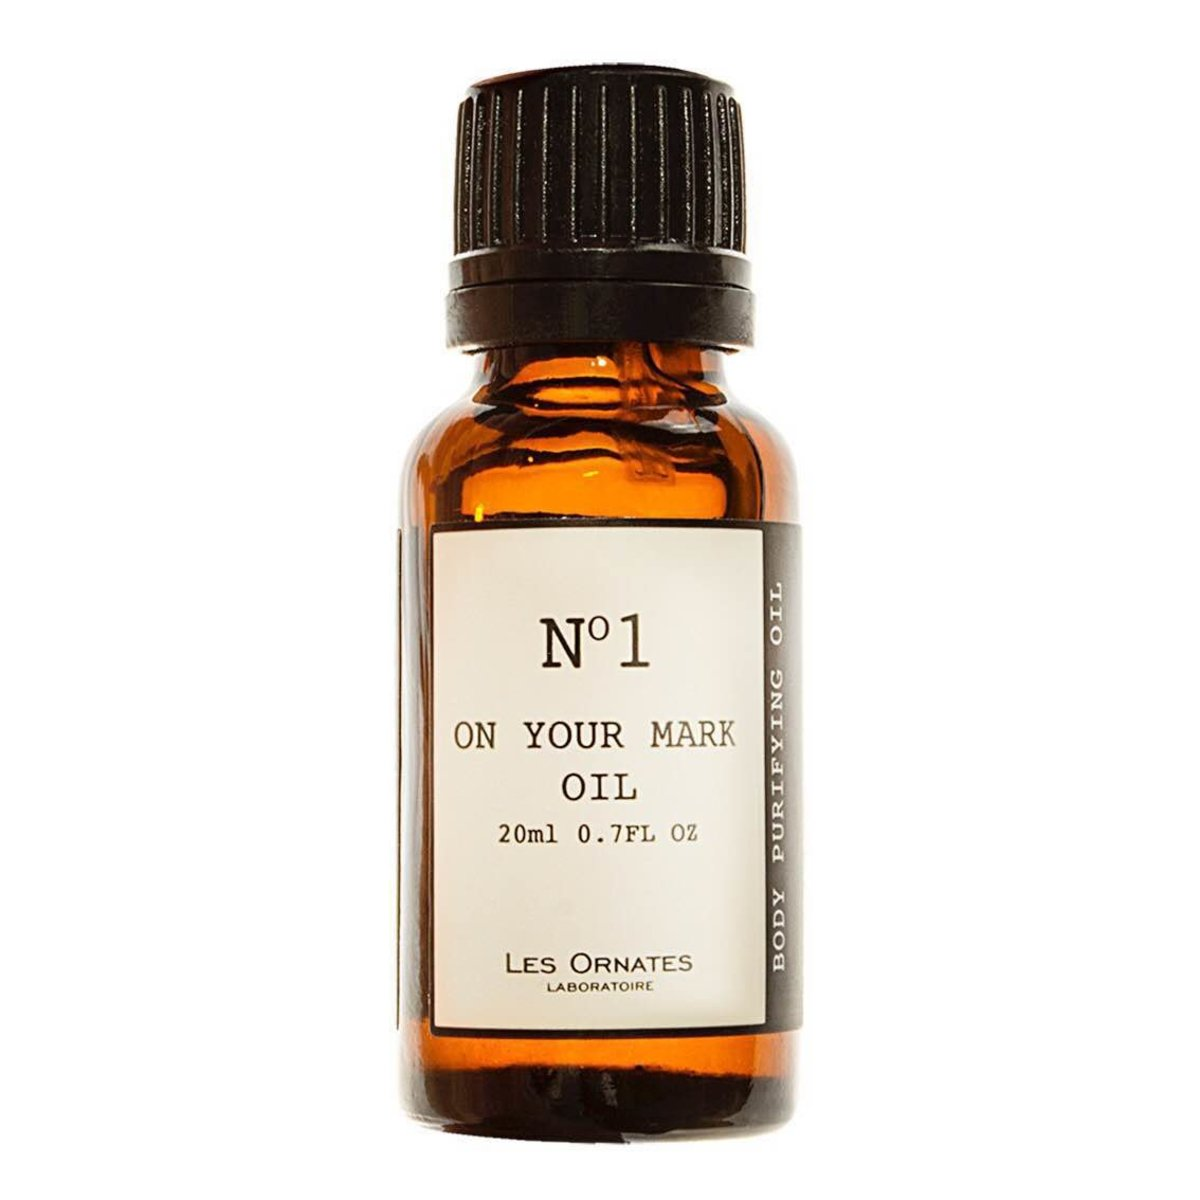 Fragrance Oil 4-week Detox Therapy NO.1  On Your Mark oil 20ml